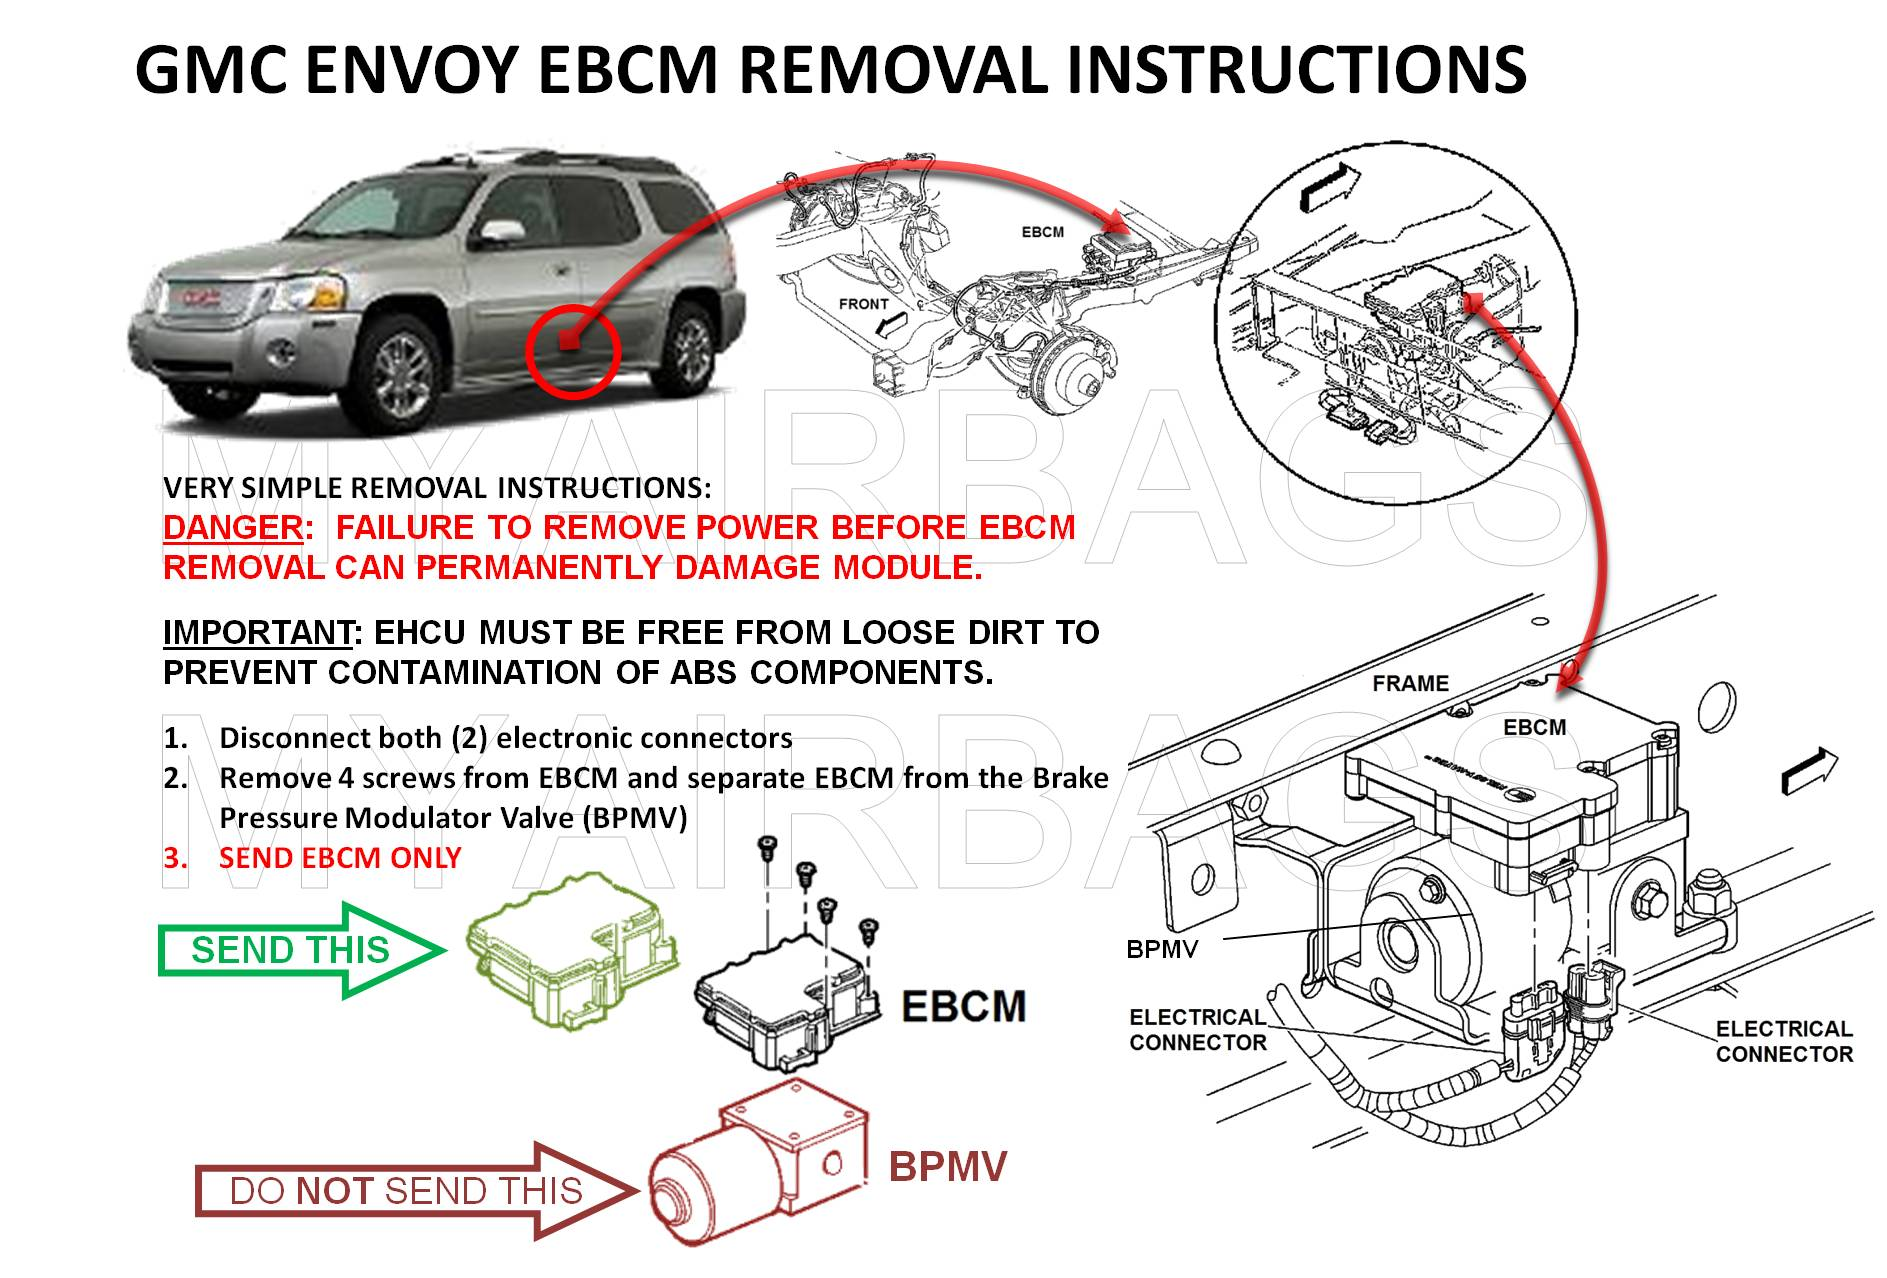 2004 Gmc Envoy Engine Diagram Xuv Fuse Box Trusted Wiring Abs Schematics Diagrams U2022 2002 Savana